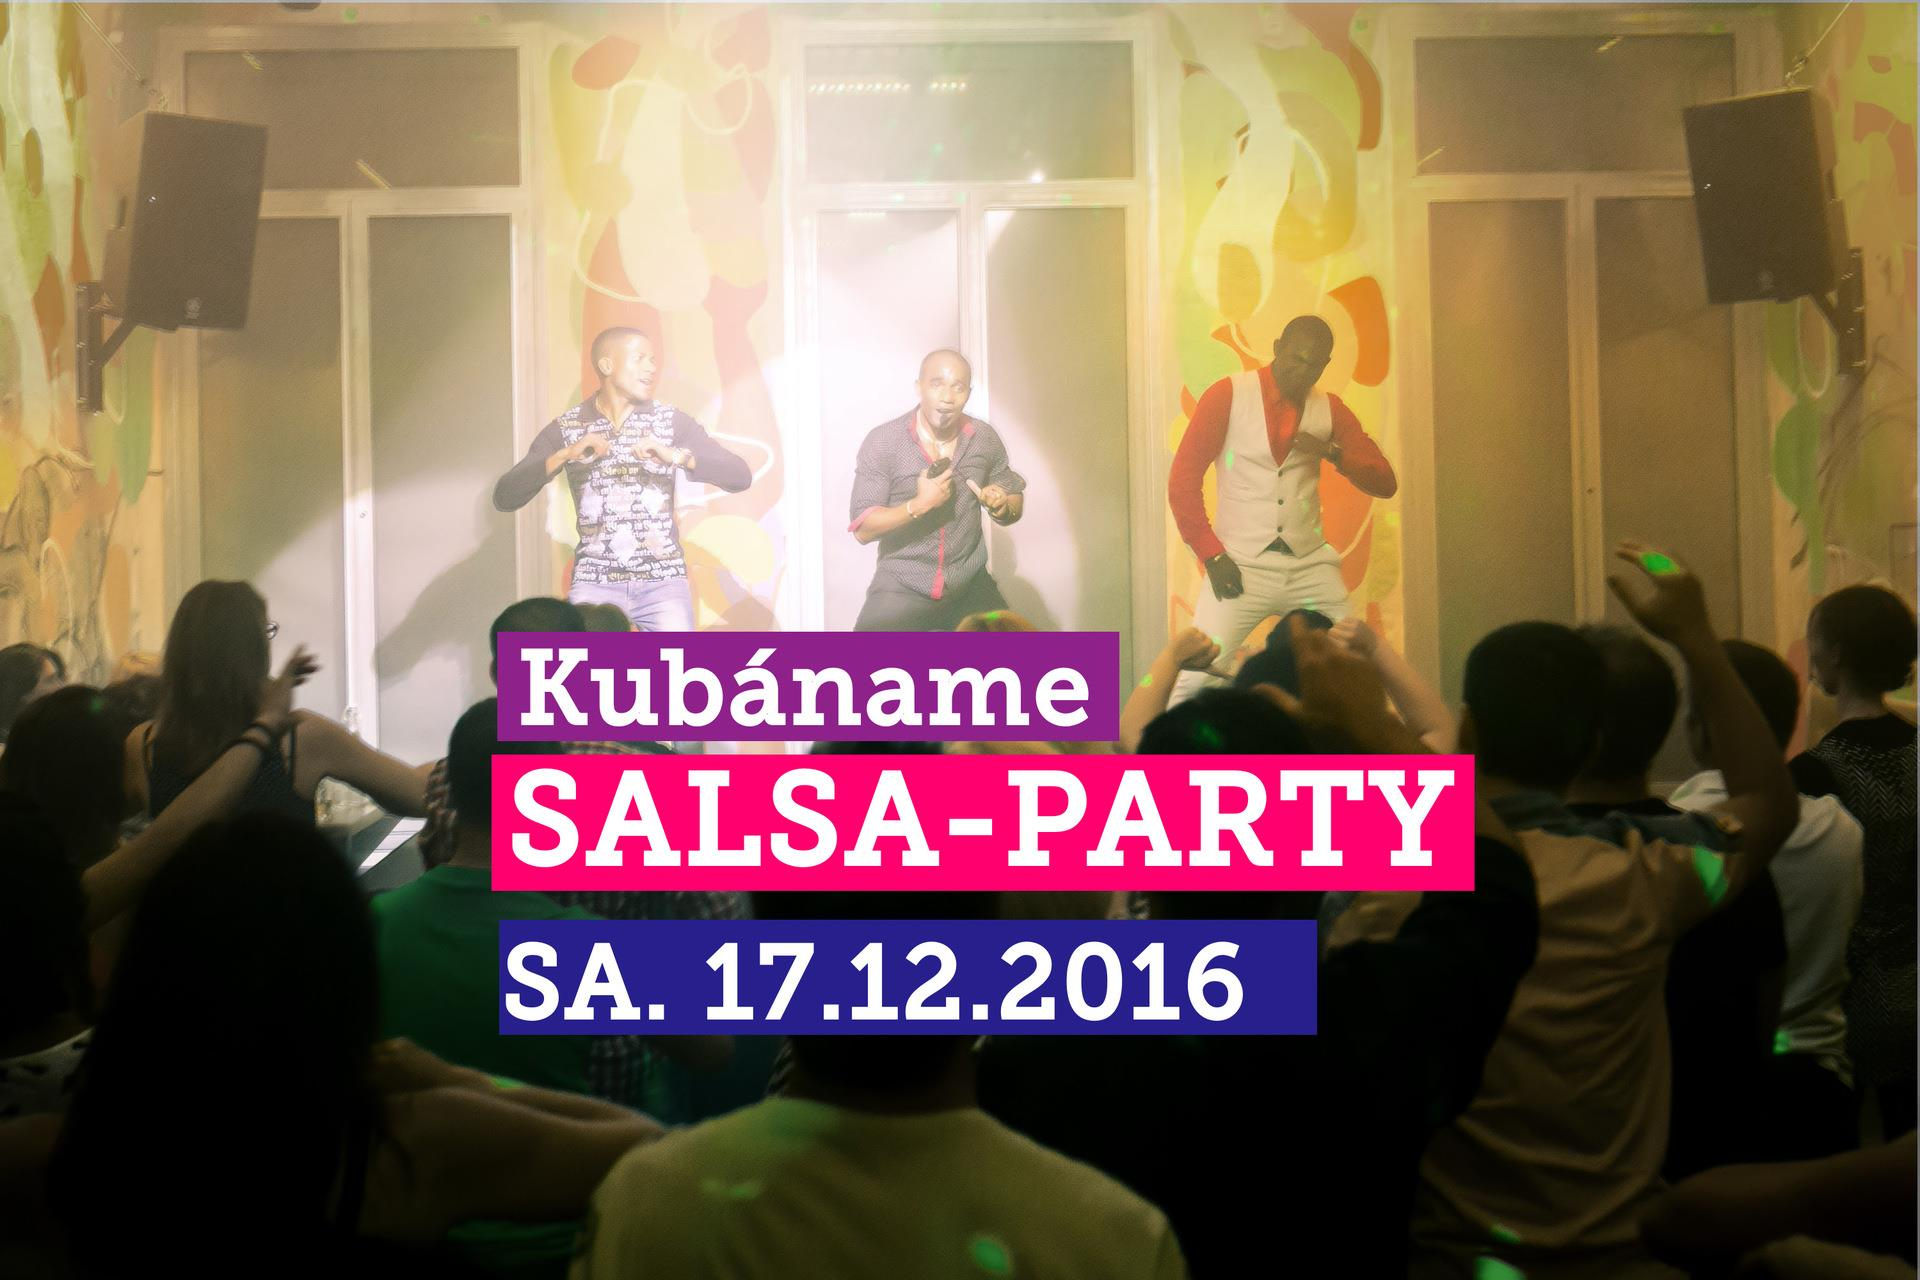 Kubáname Salsa Party in Dresden